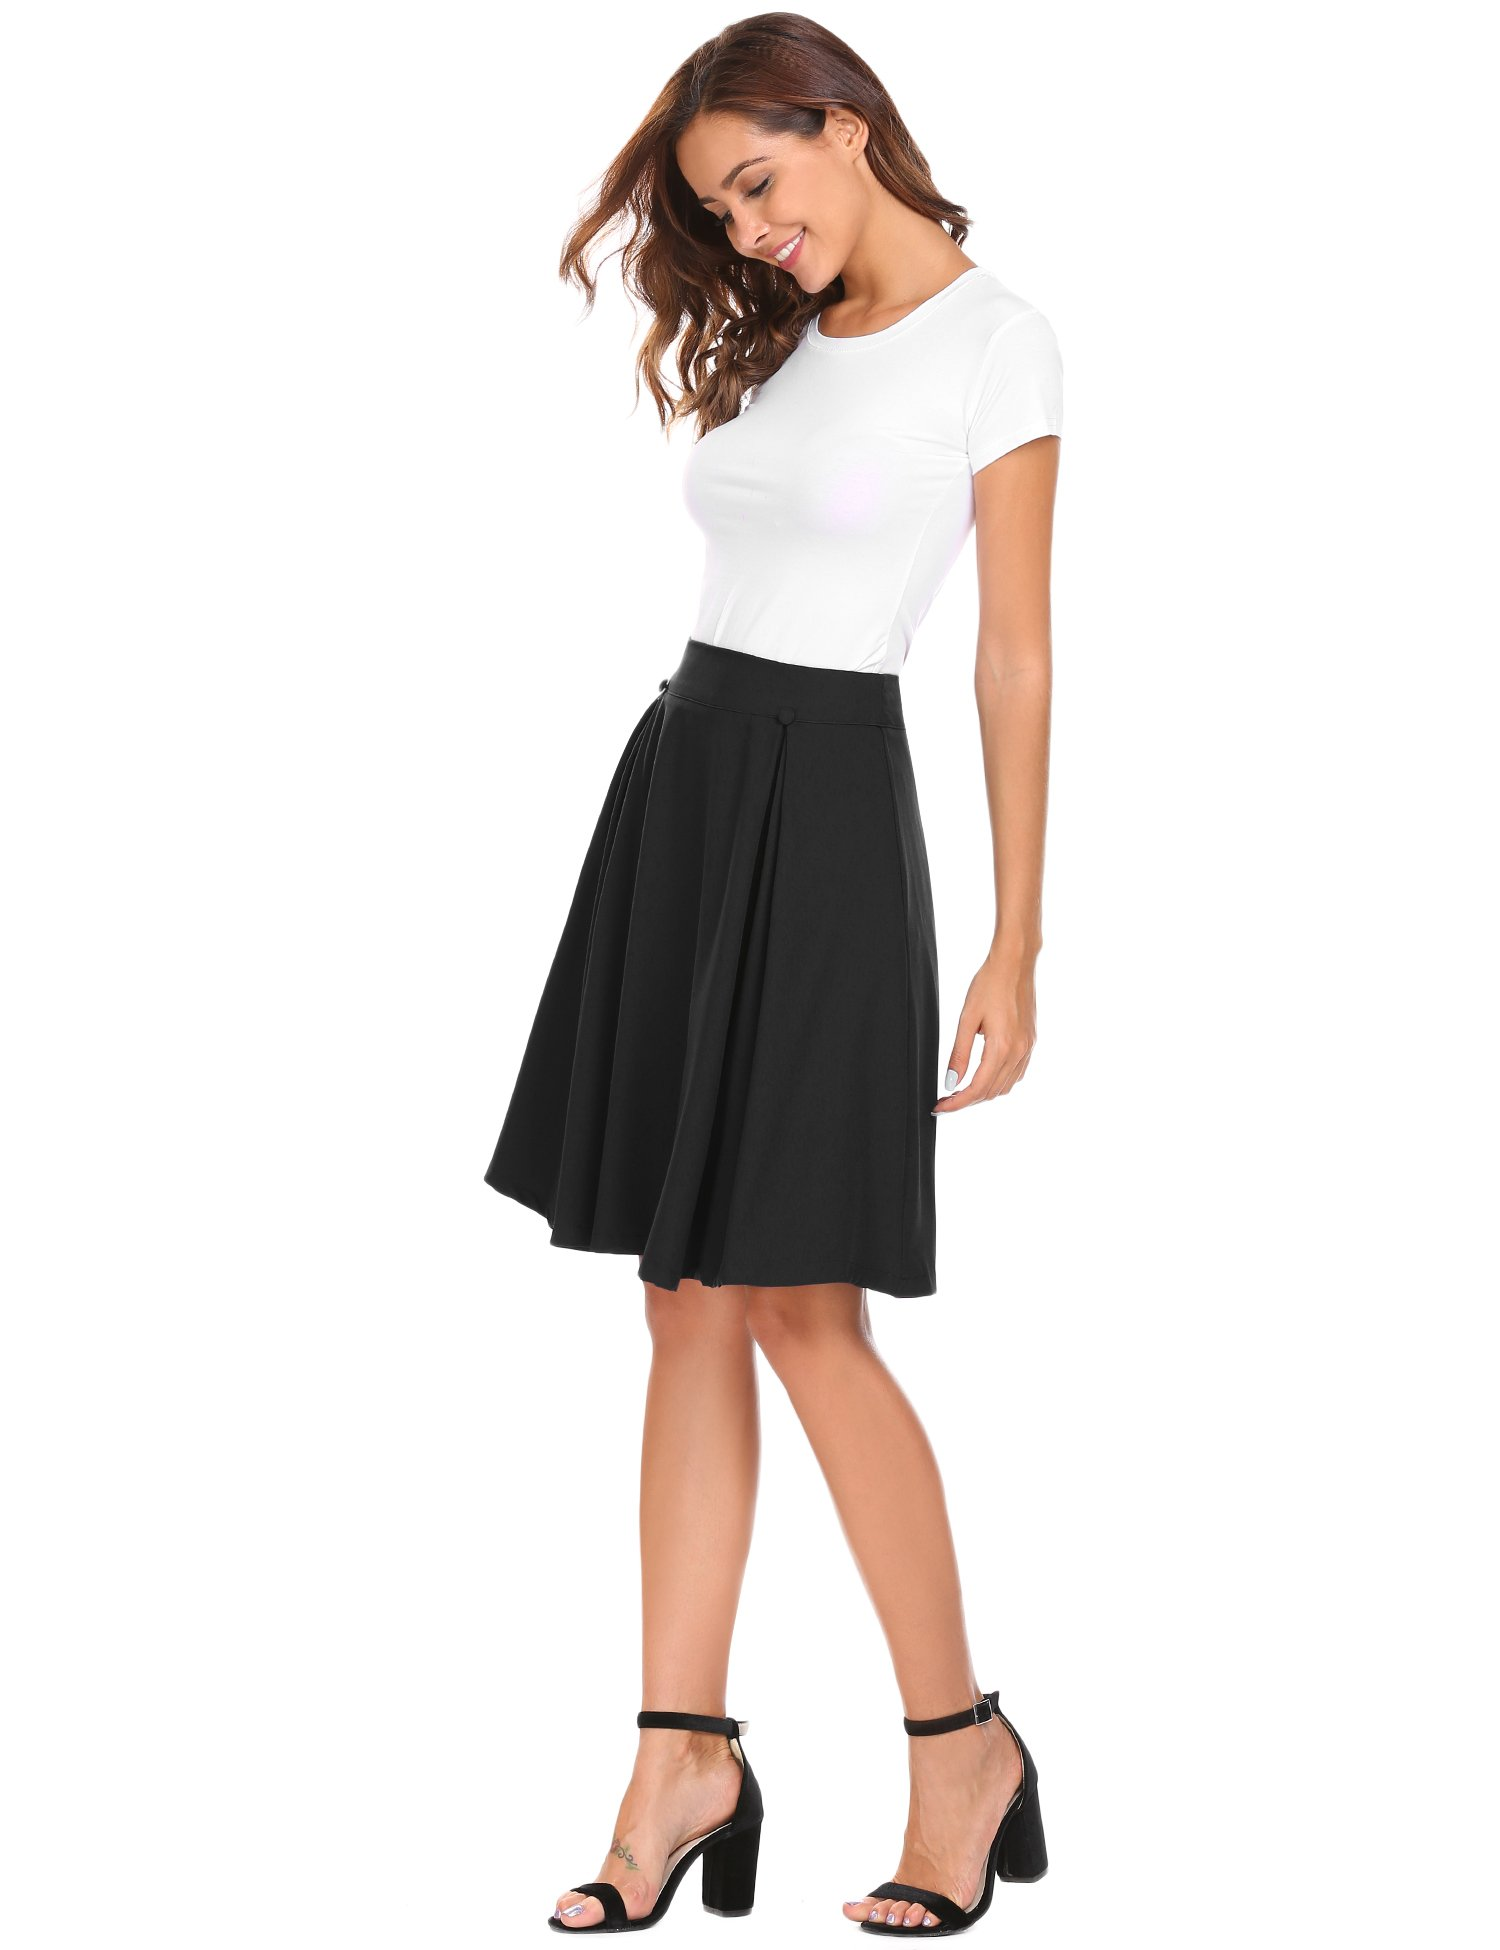 Zeagoo Women's High Waist Flared Skirt Pleated Midi Skirt Black L for Work